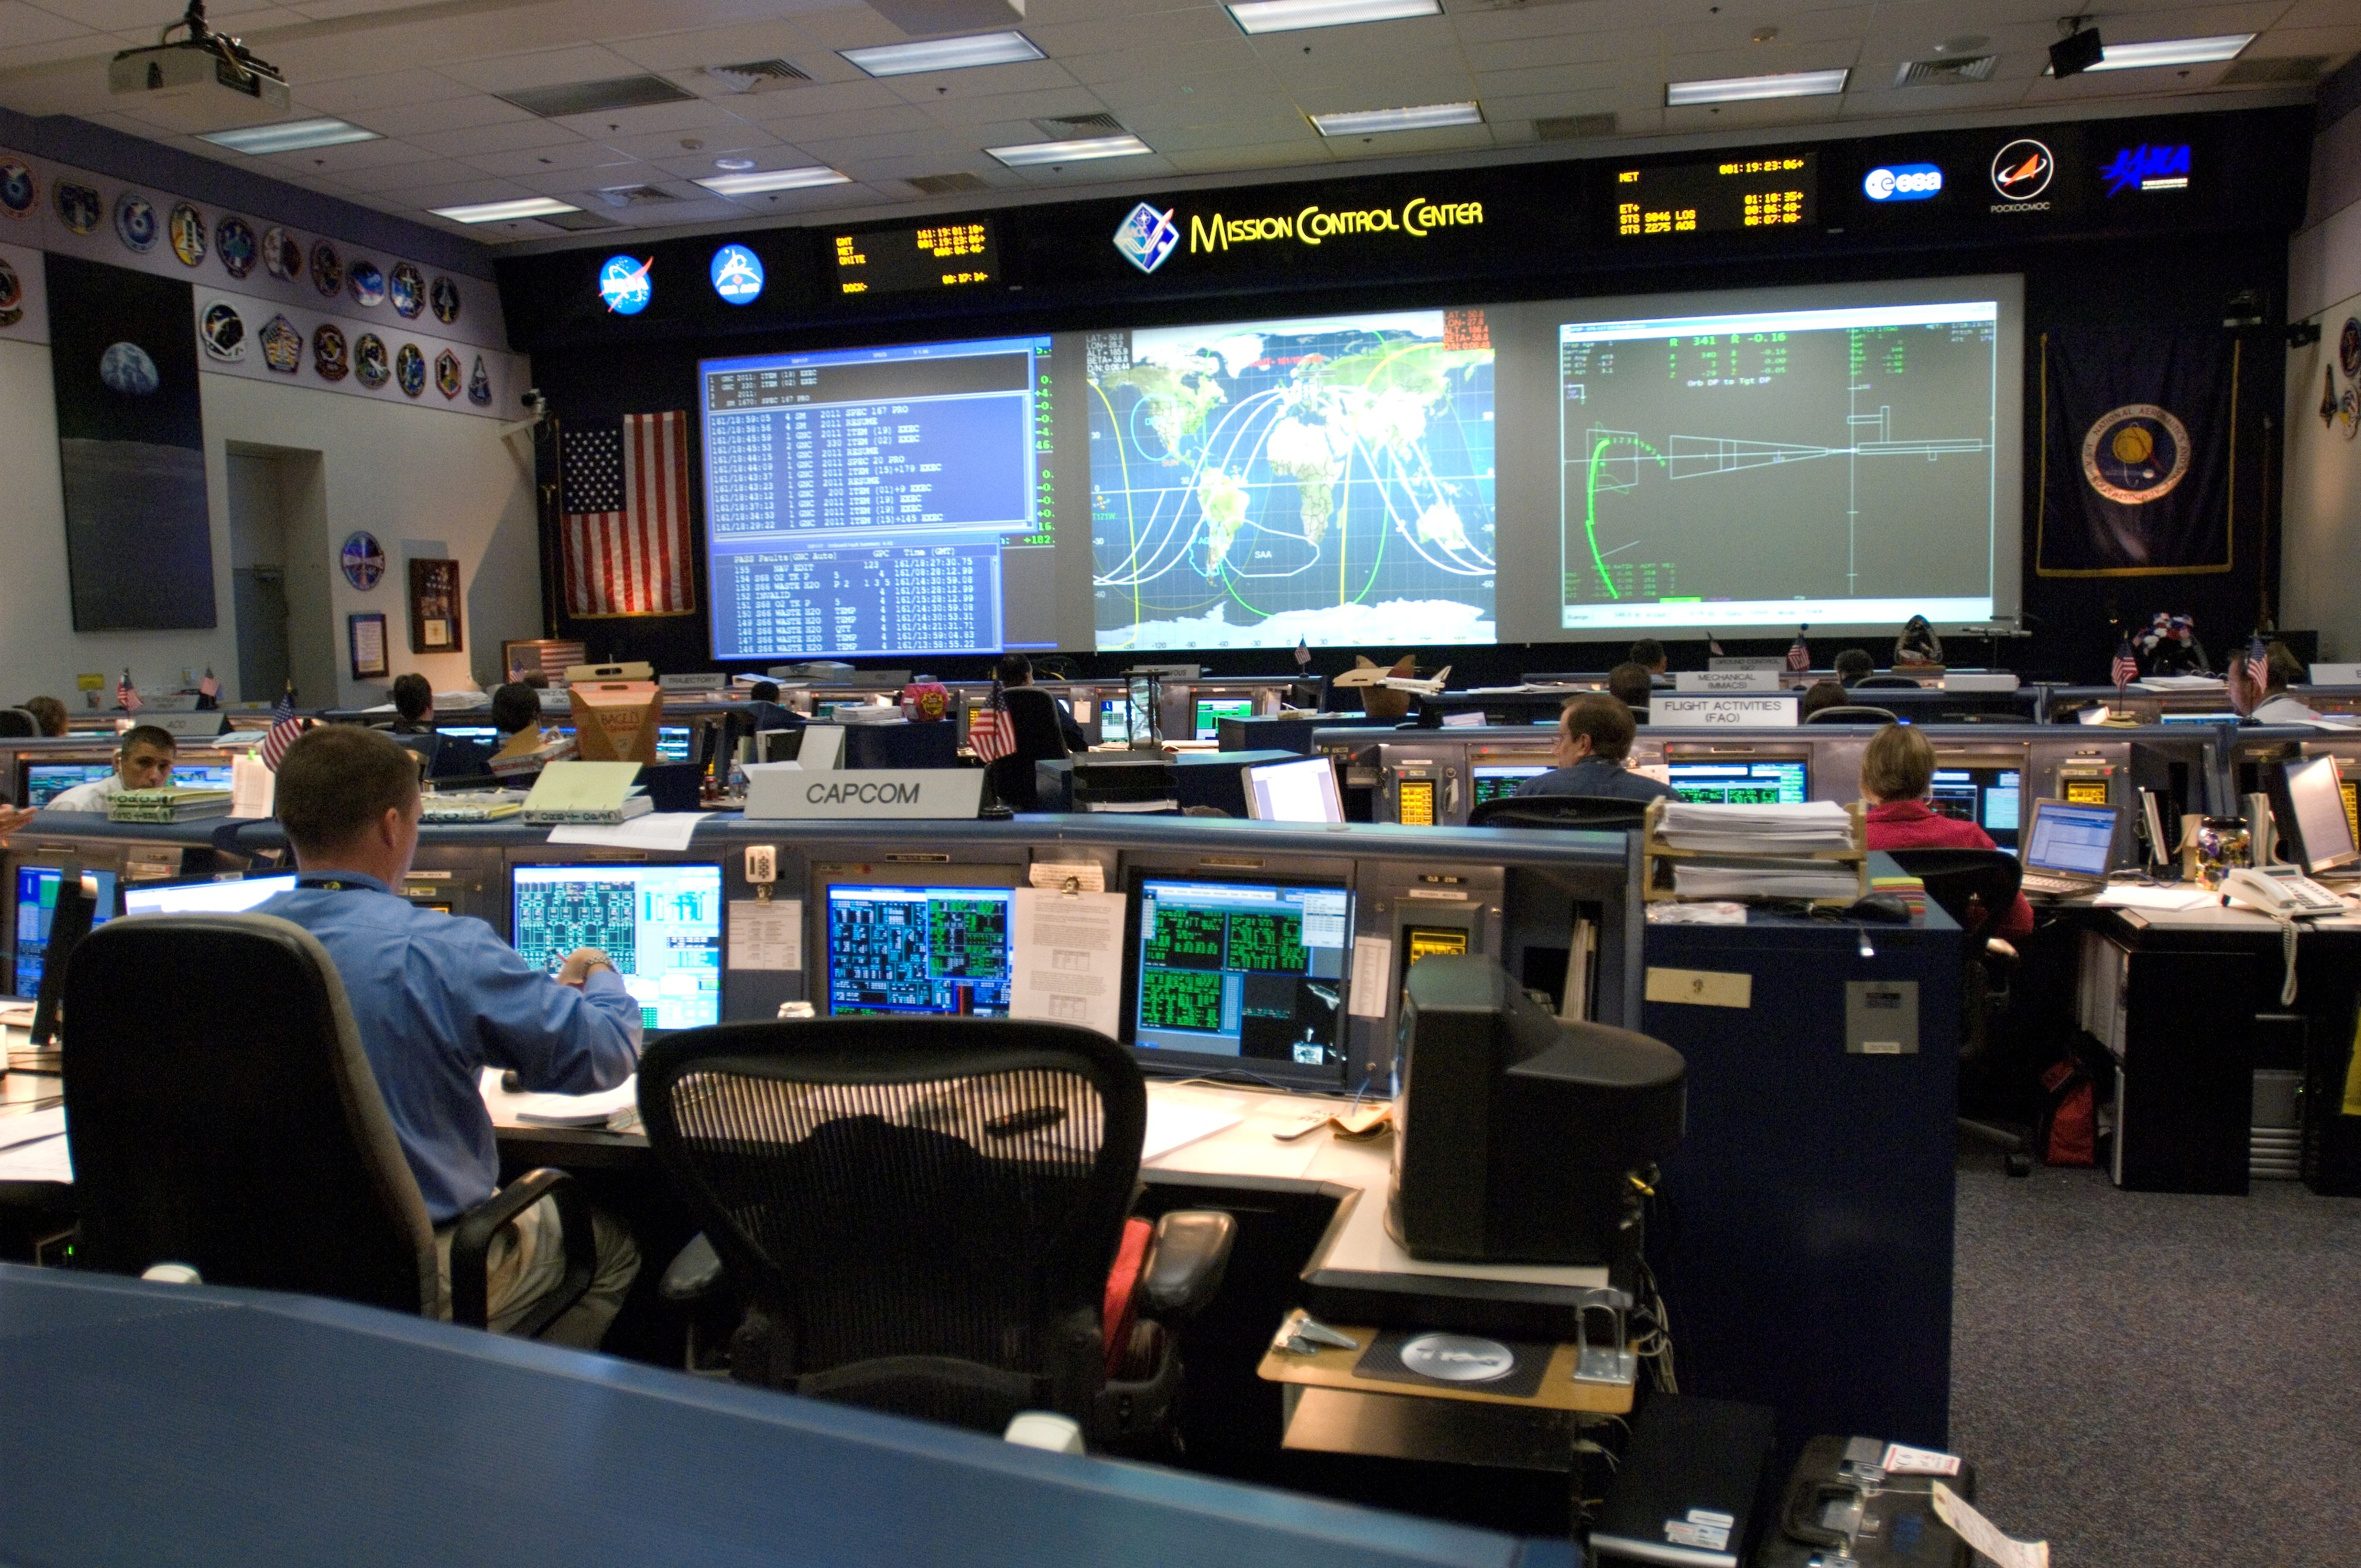 houston mission control center - photo #10